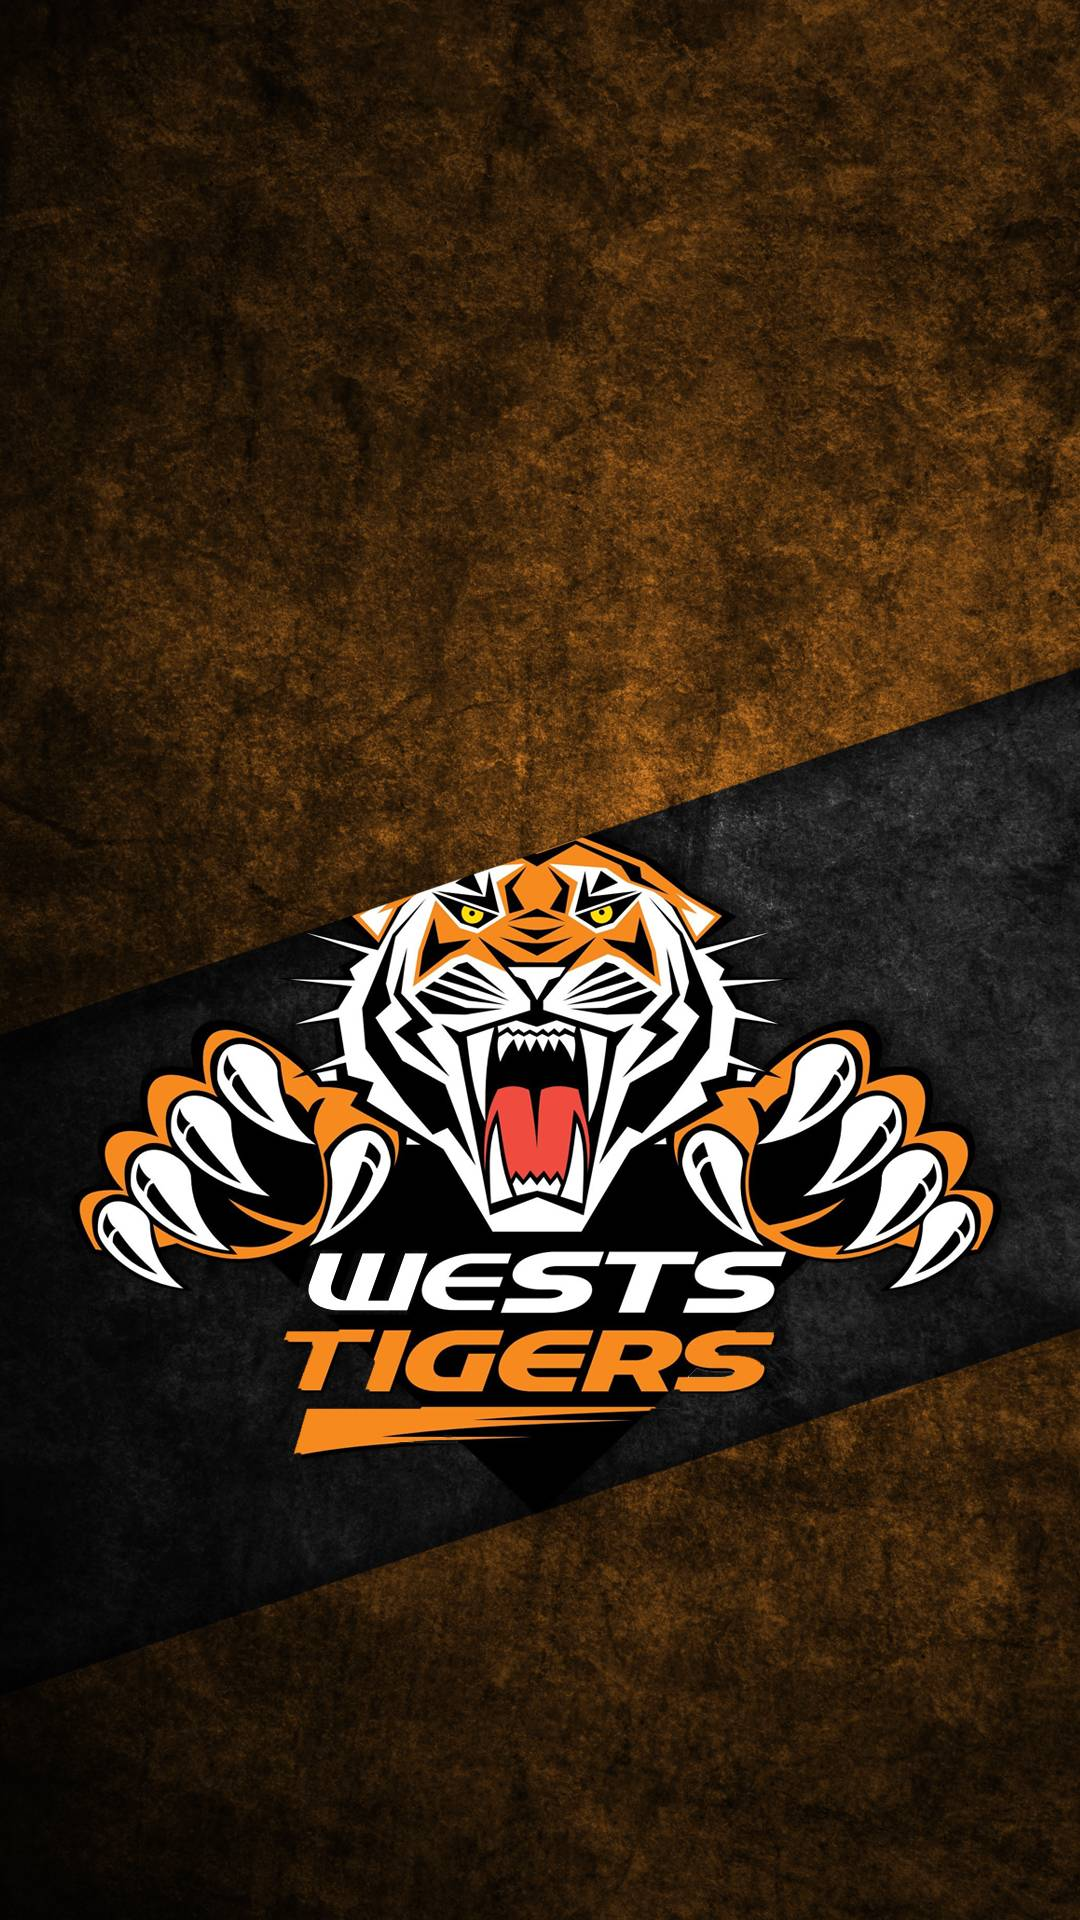 Wests Tigers Wallpaper Iphone Hd Kolpaper Awesome Free Hd Wallpapers